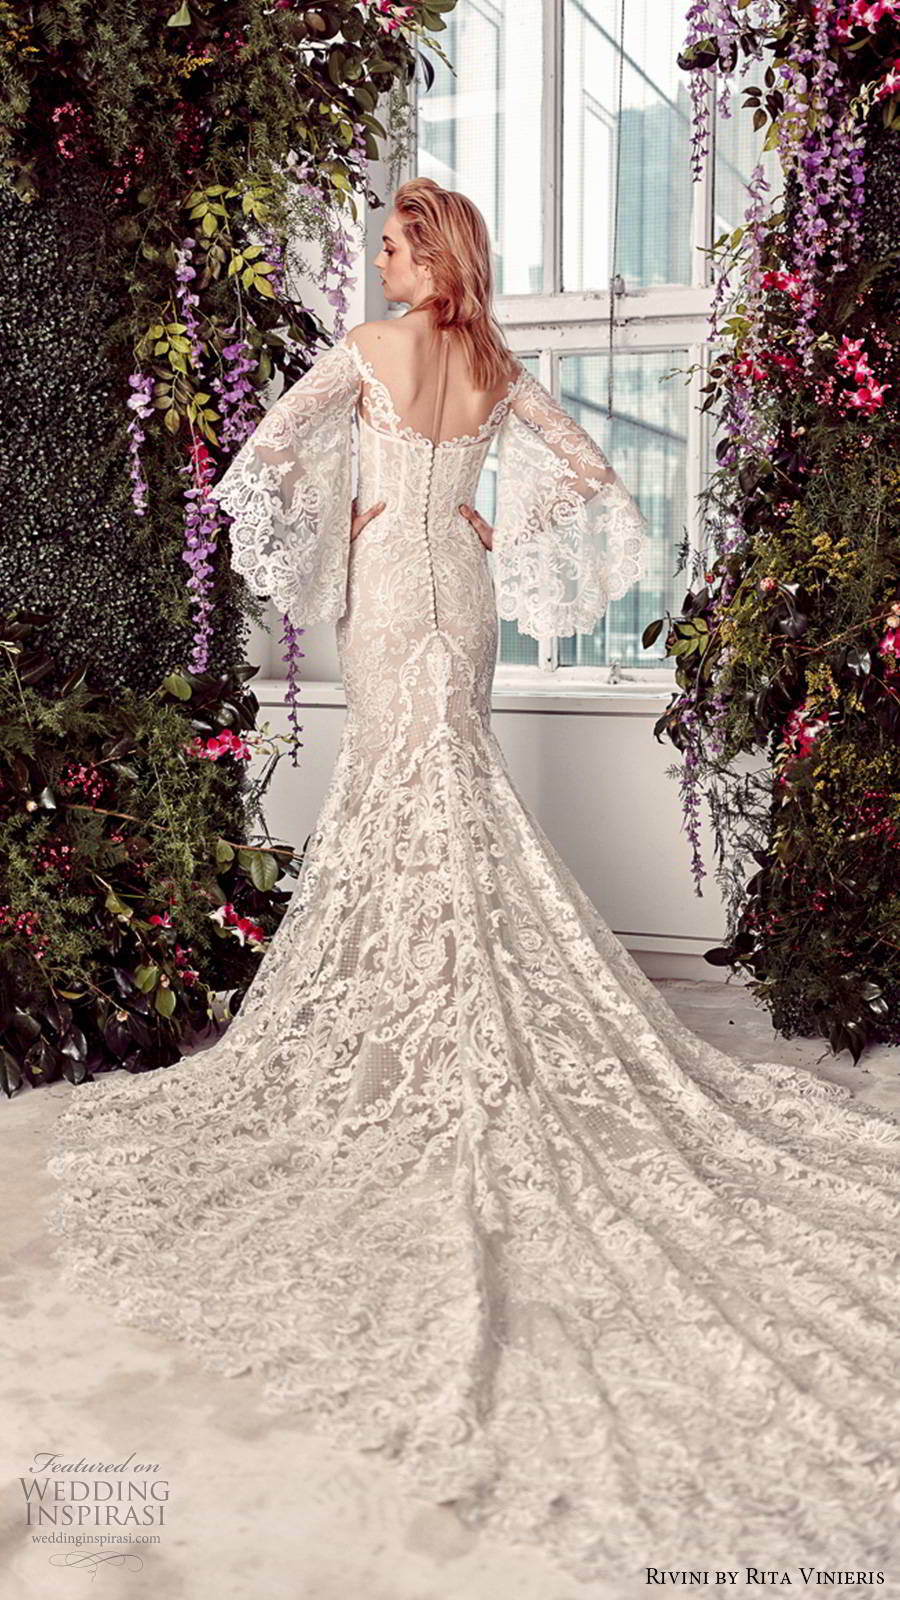 rivini by rita vinieris spring 2020 bridal elbow length flared sleeves off shoulder sweetheart neckline fully embellished lace elegant boho sheath fit flare wedding dress chapel train (1) bv